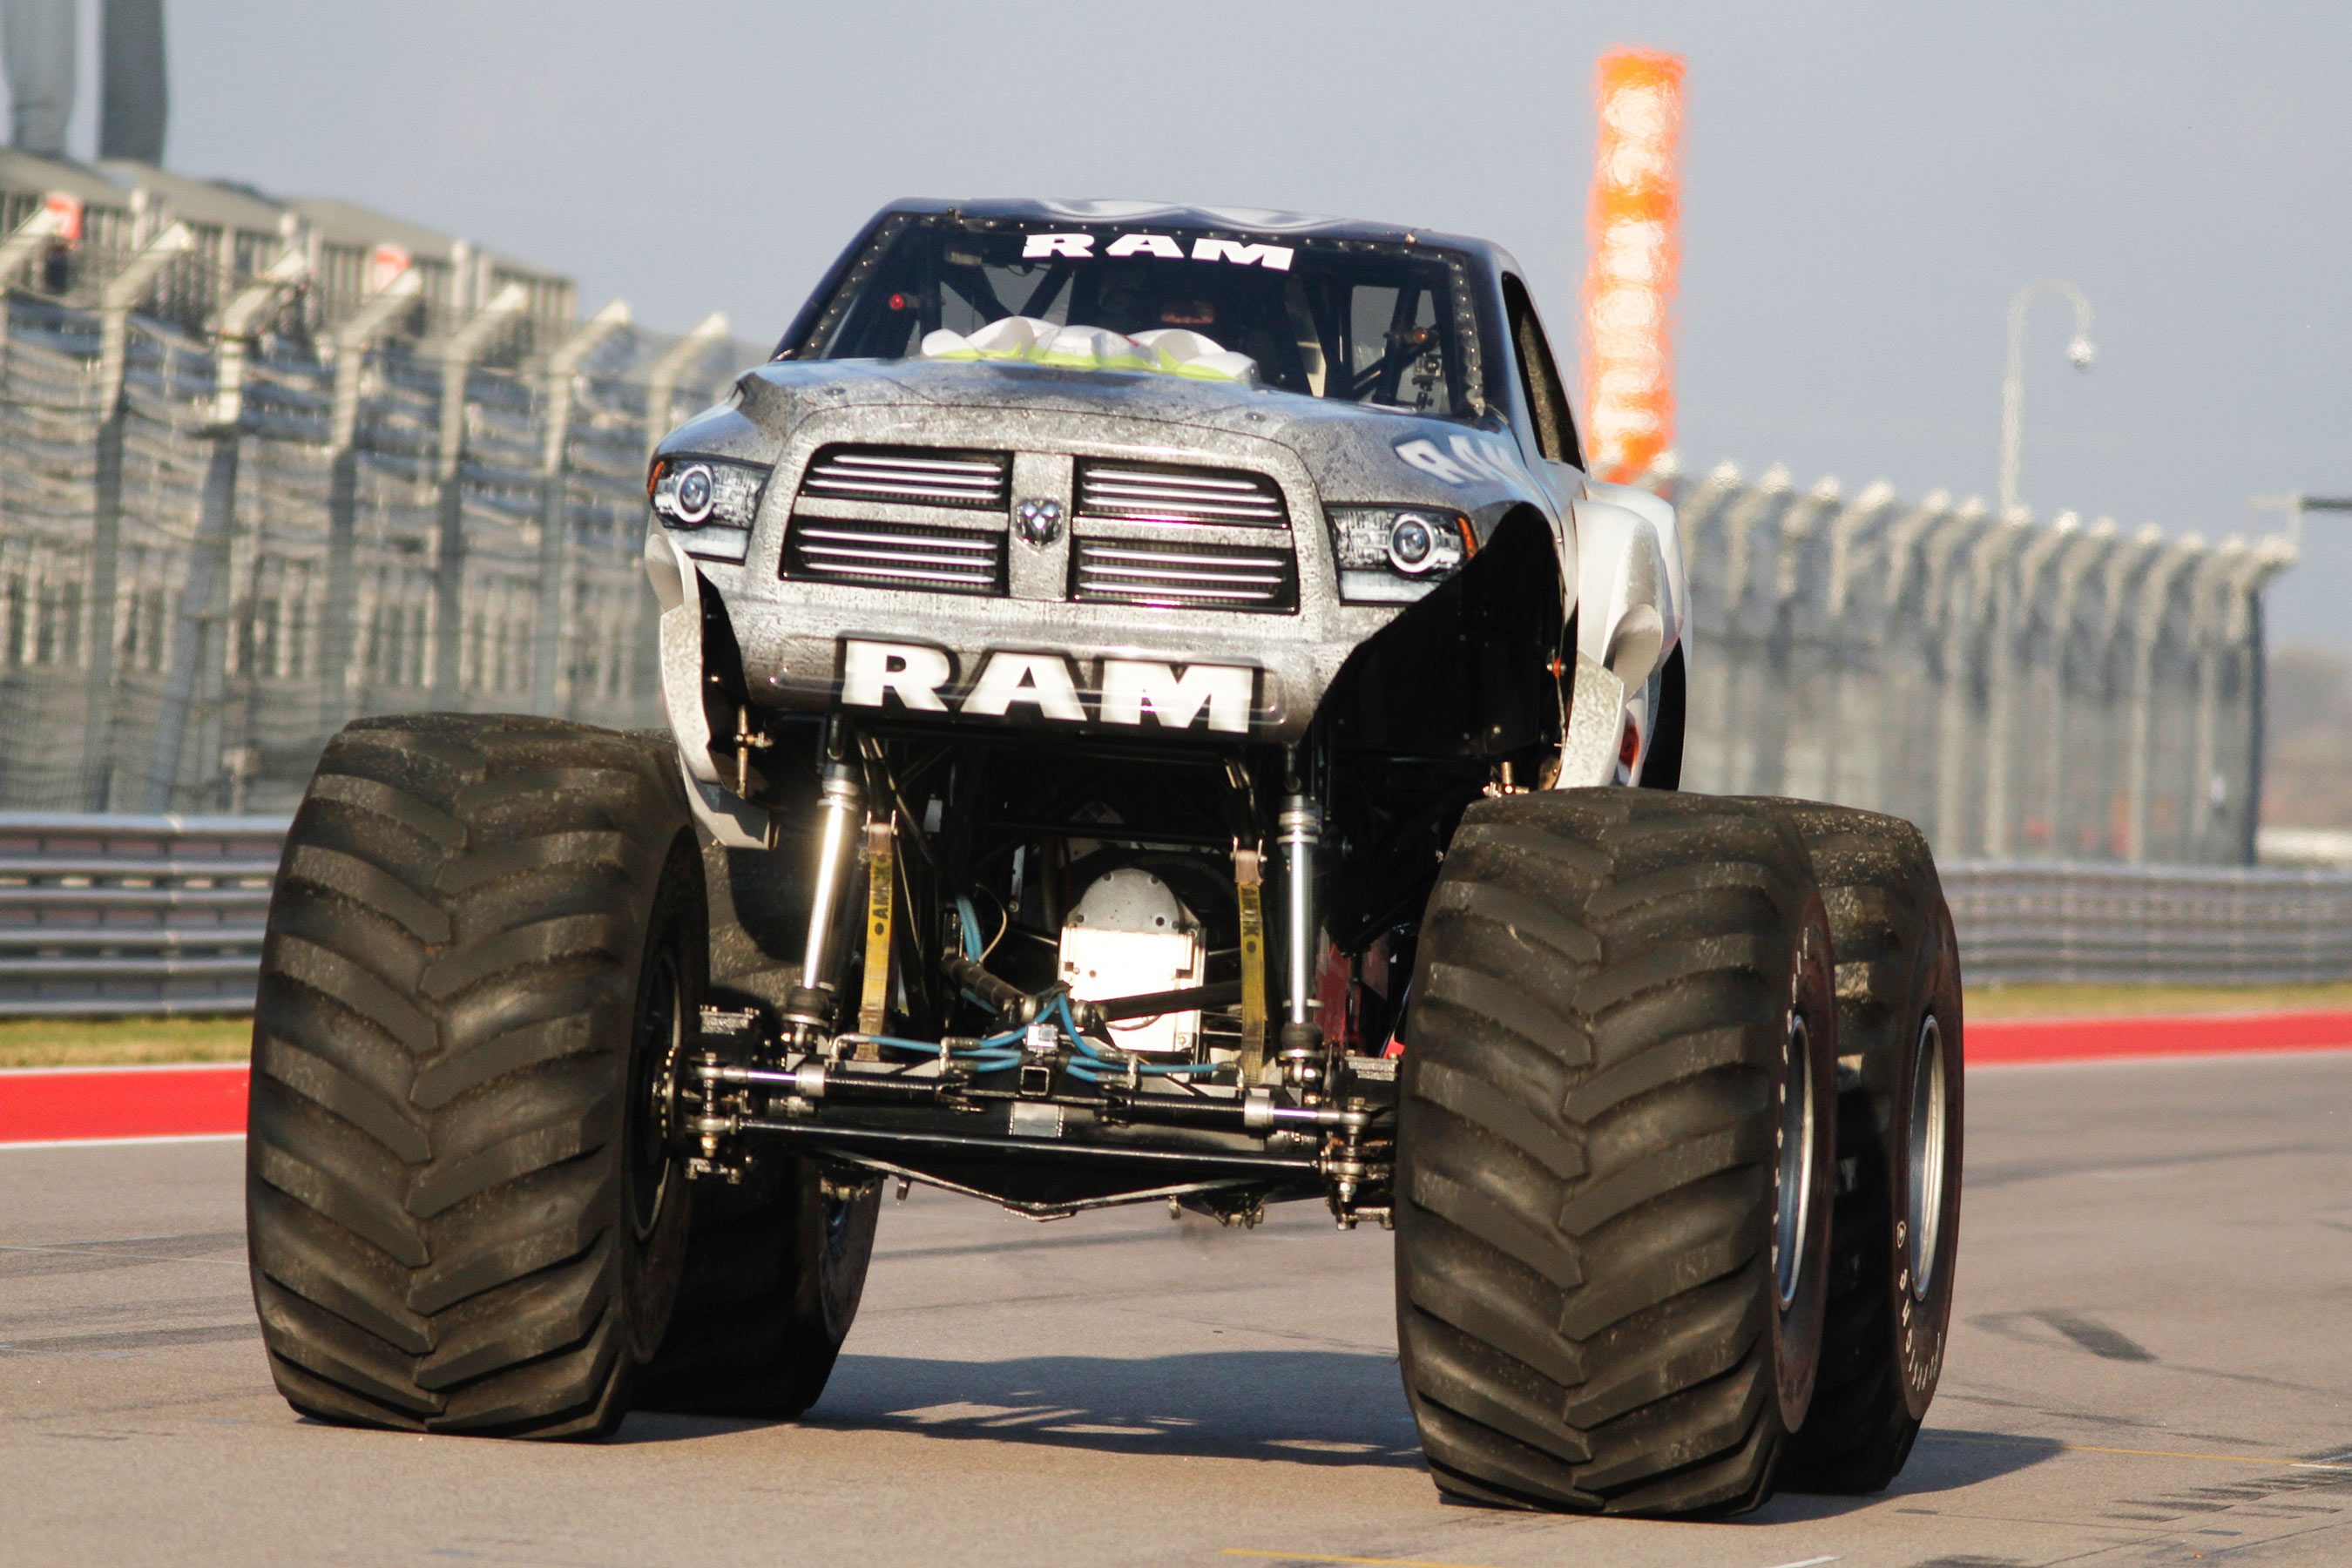 raminator monster truck and hall brothers racing team shatter guinness world records record. Black Bedroom Furniture Sets. Home Design Ideas